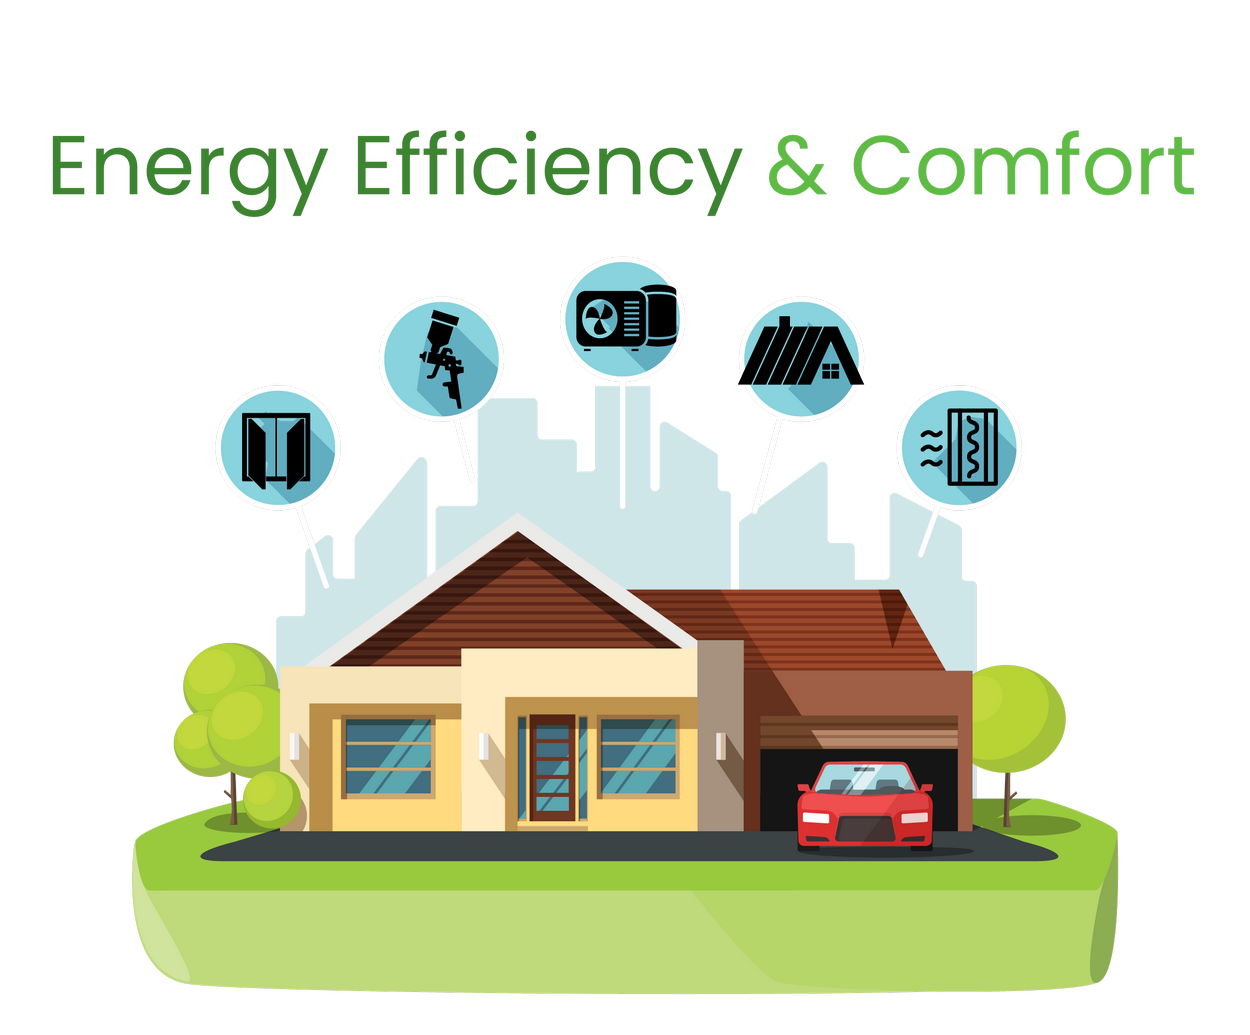 Energy Efficiency And Comfort small